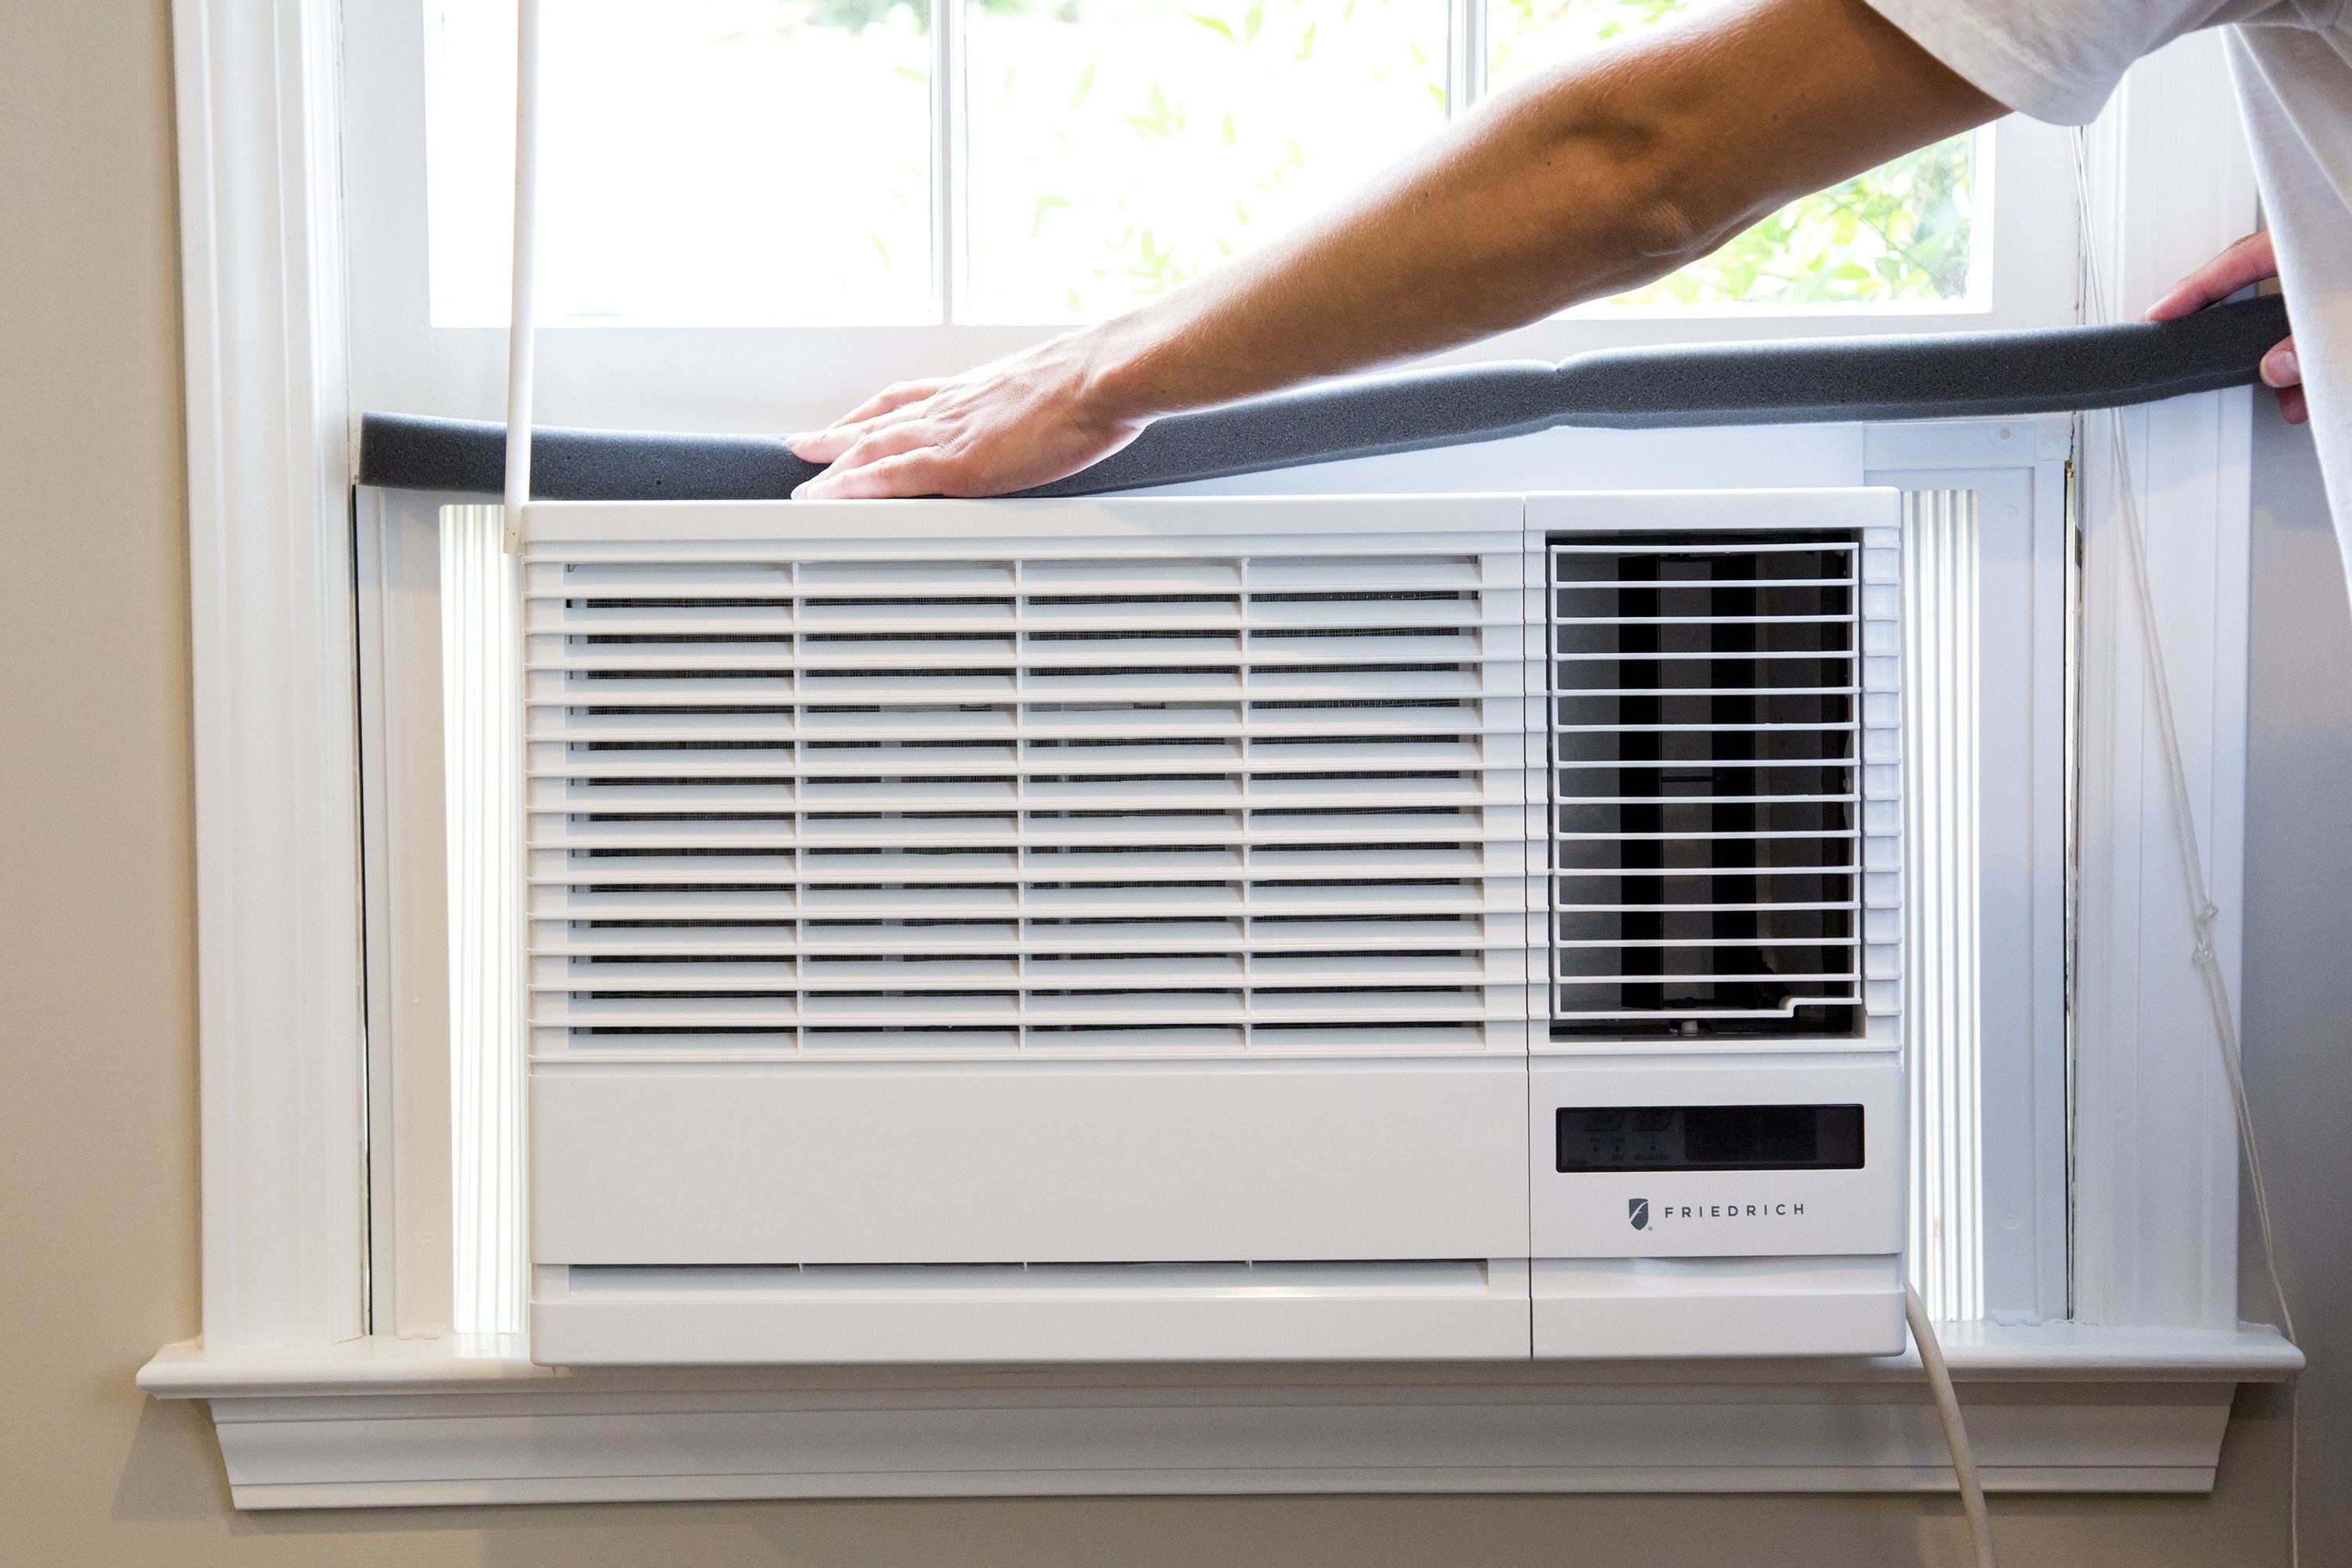 Five Annoying Window AC Problems and How to Avoid Them